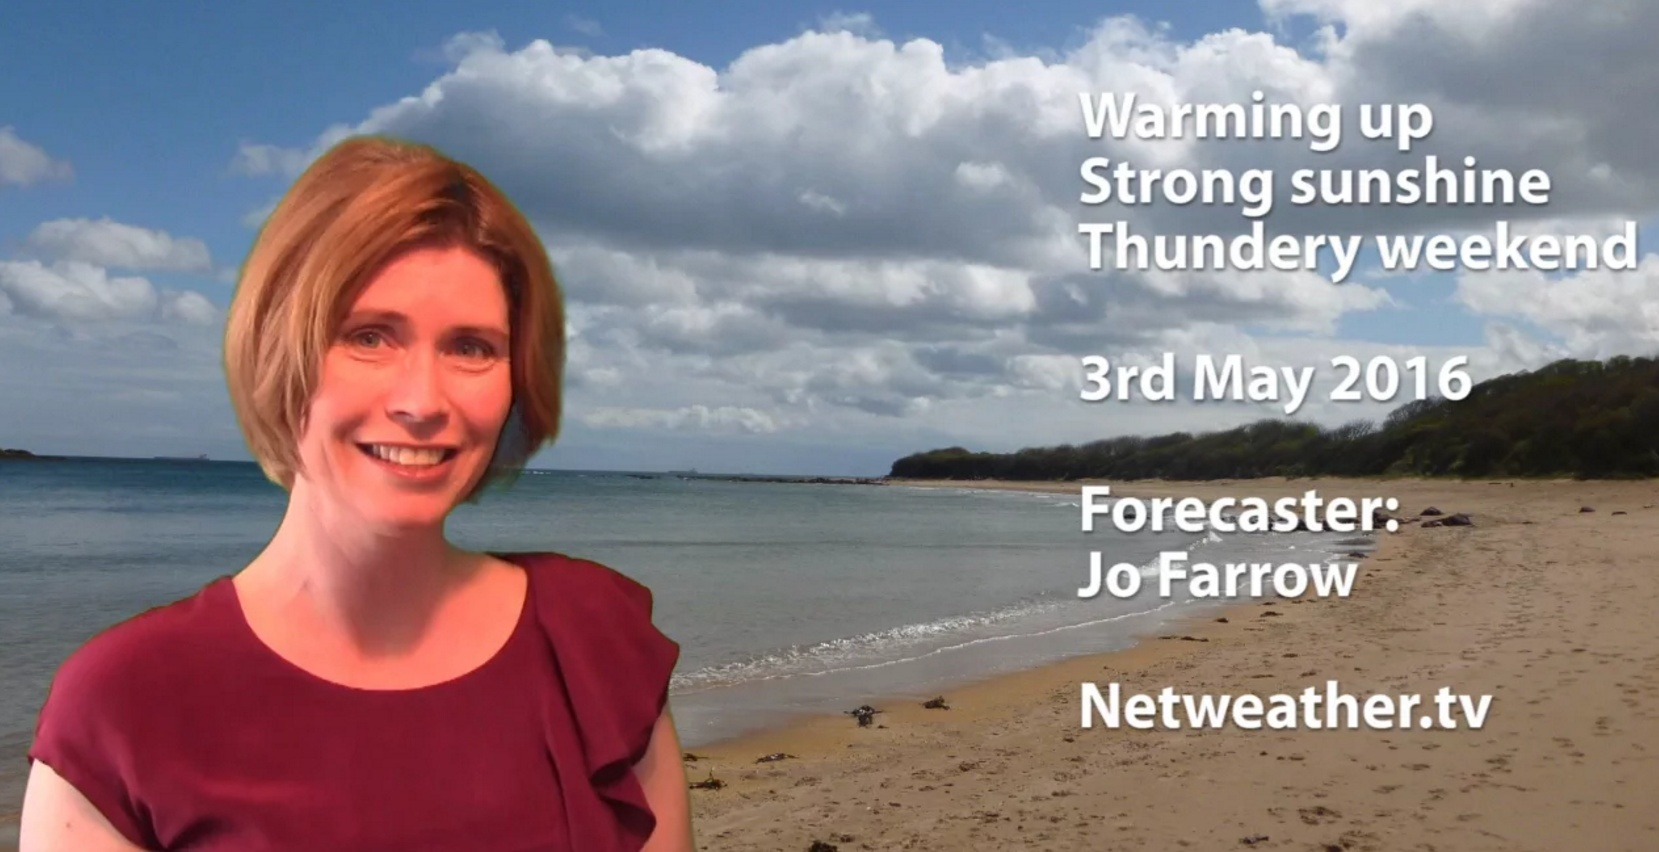 Video: Warming up - thundery weekend?